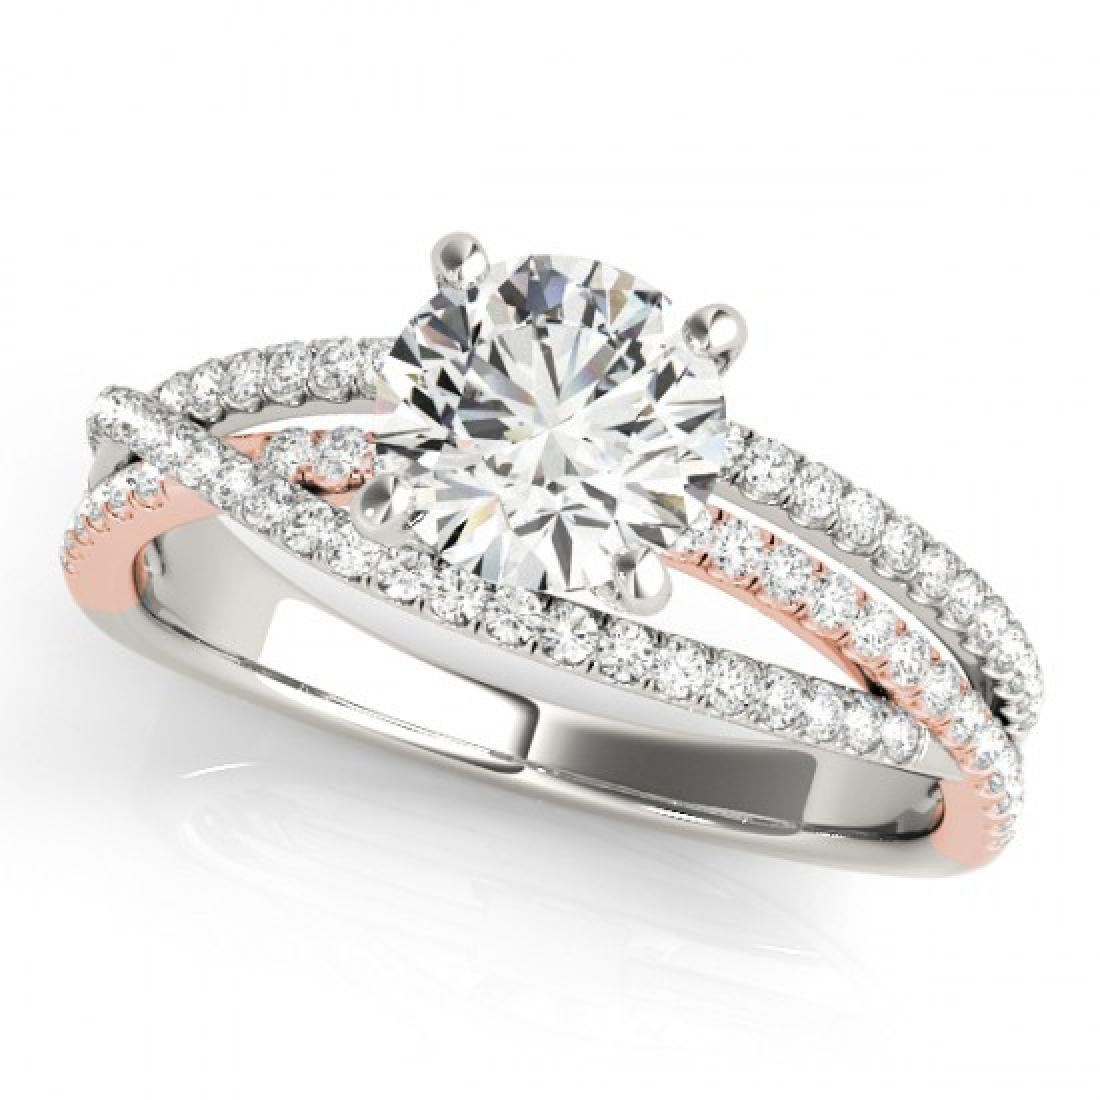 1.65 CTW Certified VS/SI Diamond Solitaire Ring 14K - 2